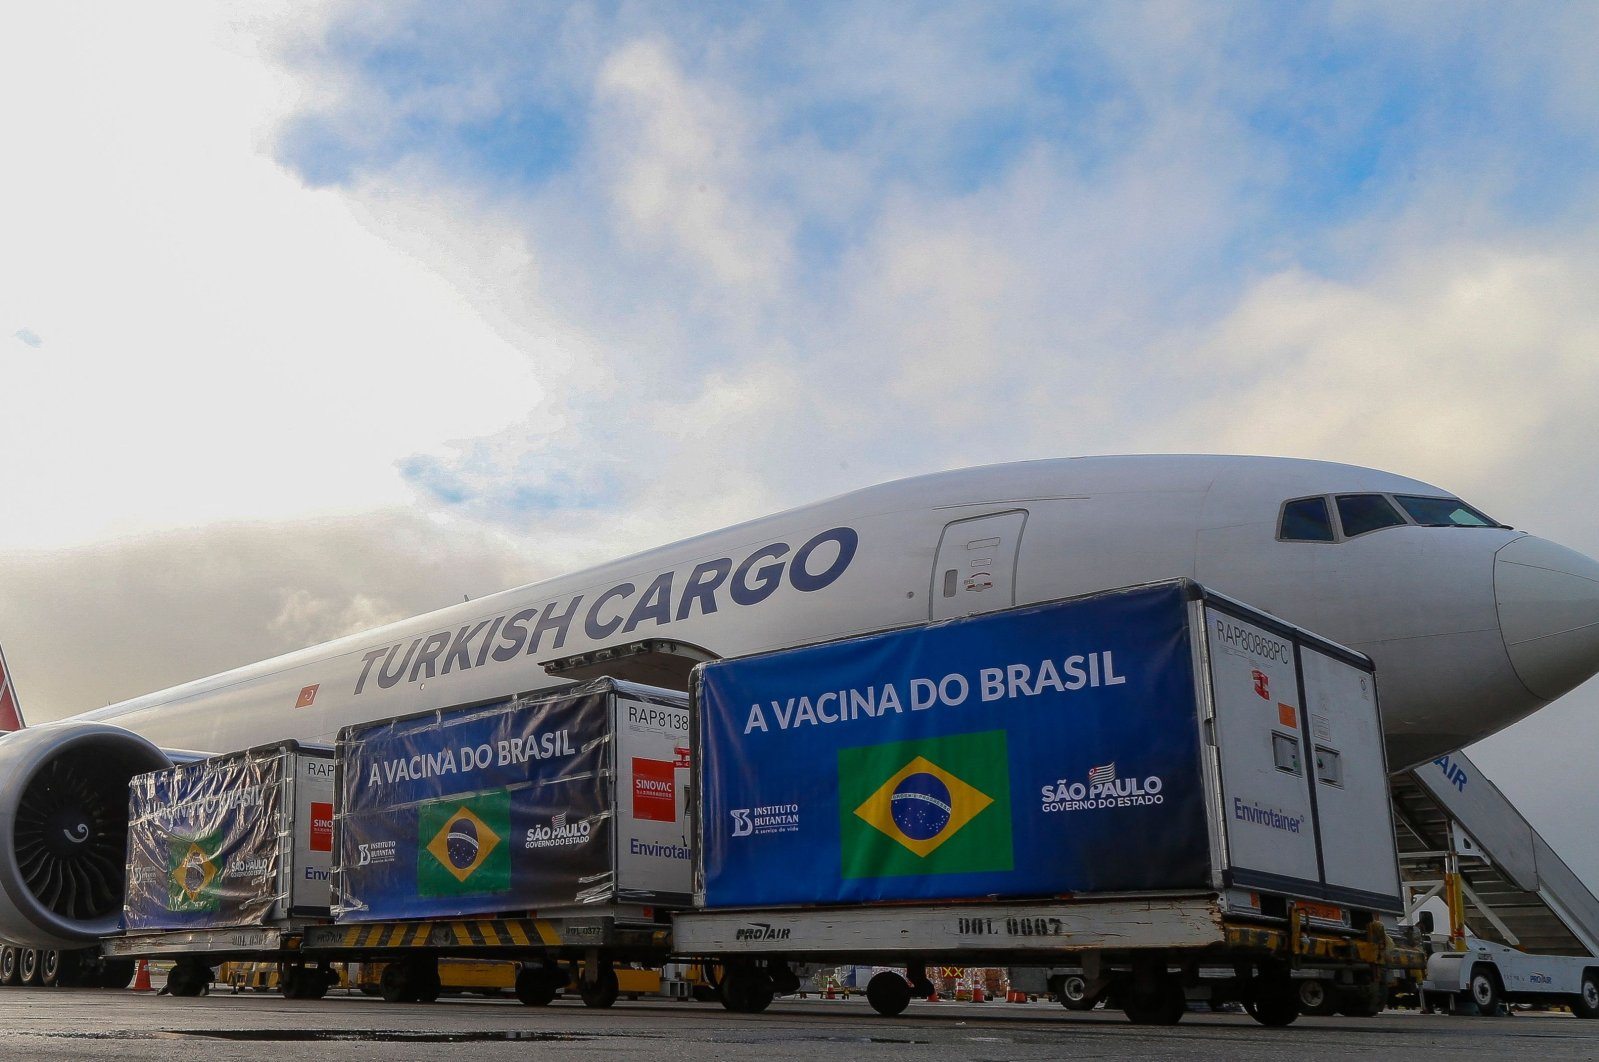 Containers carrying Active Pharmaceutical Ingredients (IFA) to manufacture CoronaVac vaccines, are unloaded from a Turkish Cargo plane at Guarulhos International Airport in Sao Paulo, Brazil, April 19, 2021. (AFP Photo)